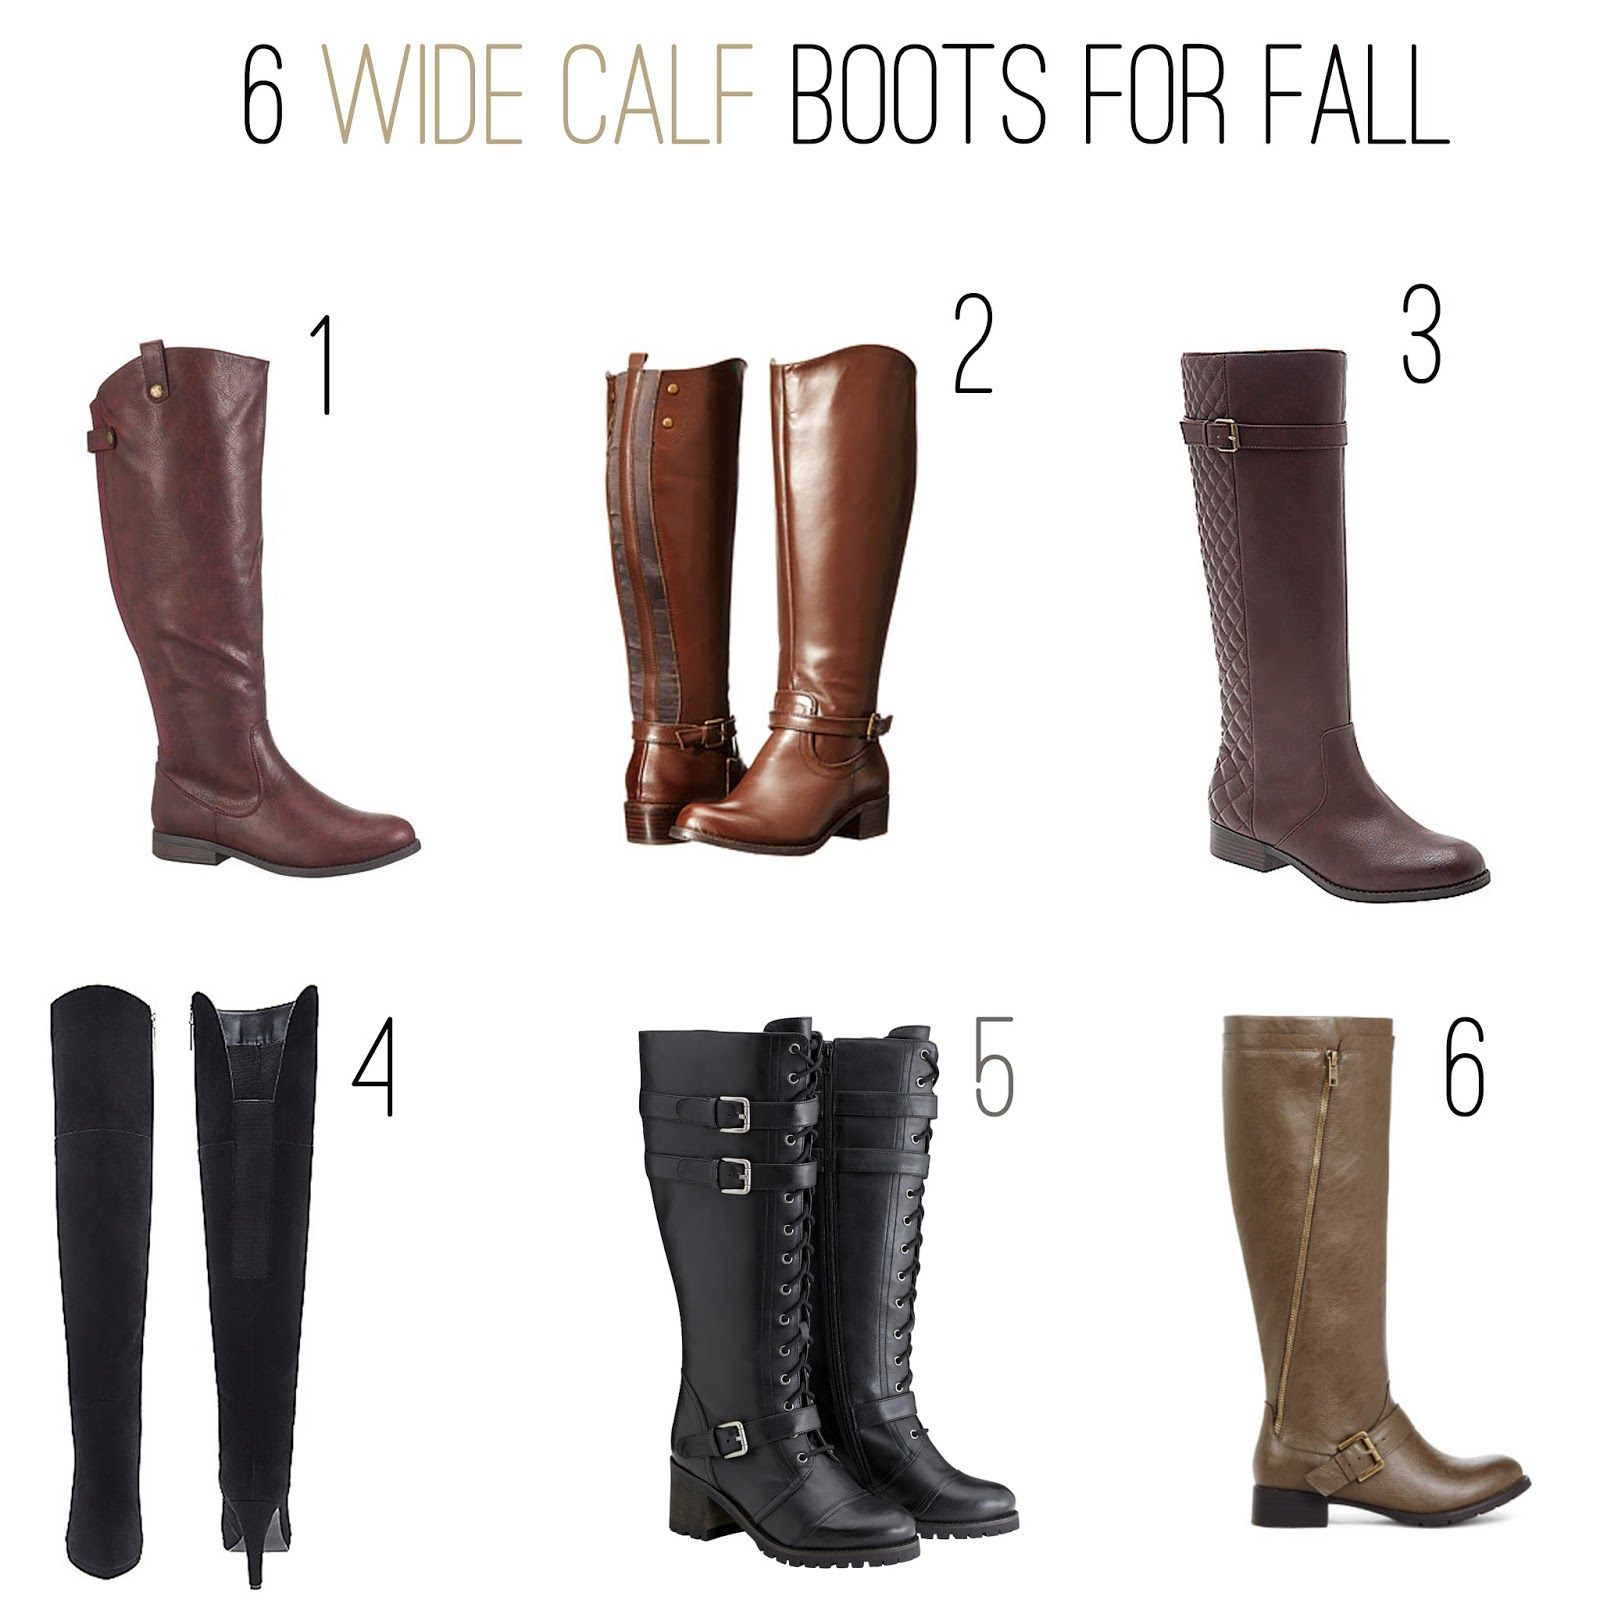 GarnerStyle | The Curvy Girl Guide: Wide Calf Boots for Fall